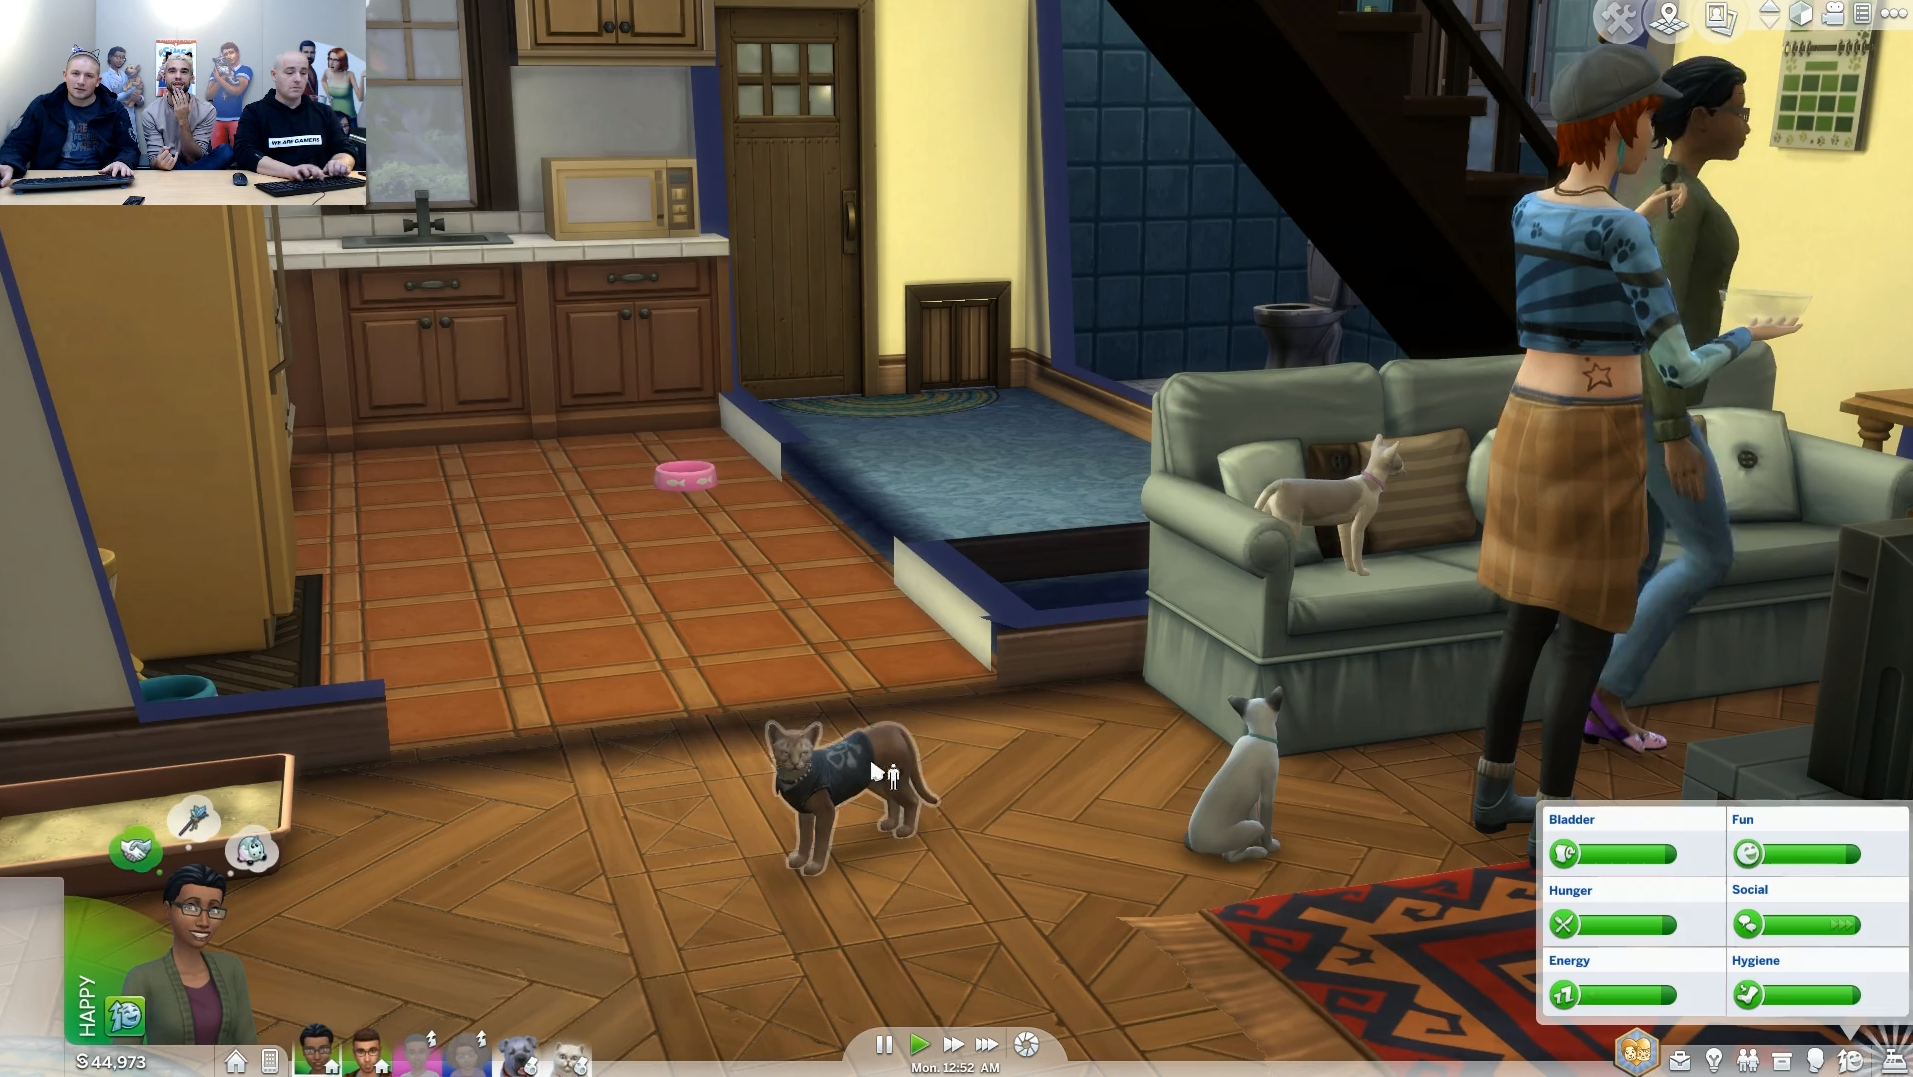 sims 4 cats and dogs stuck on loading screen